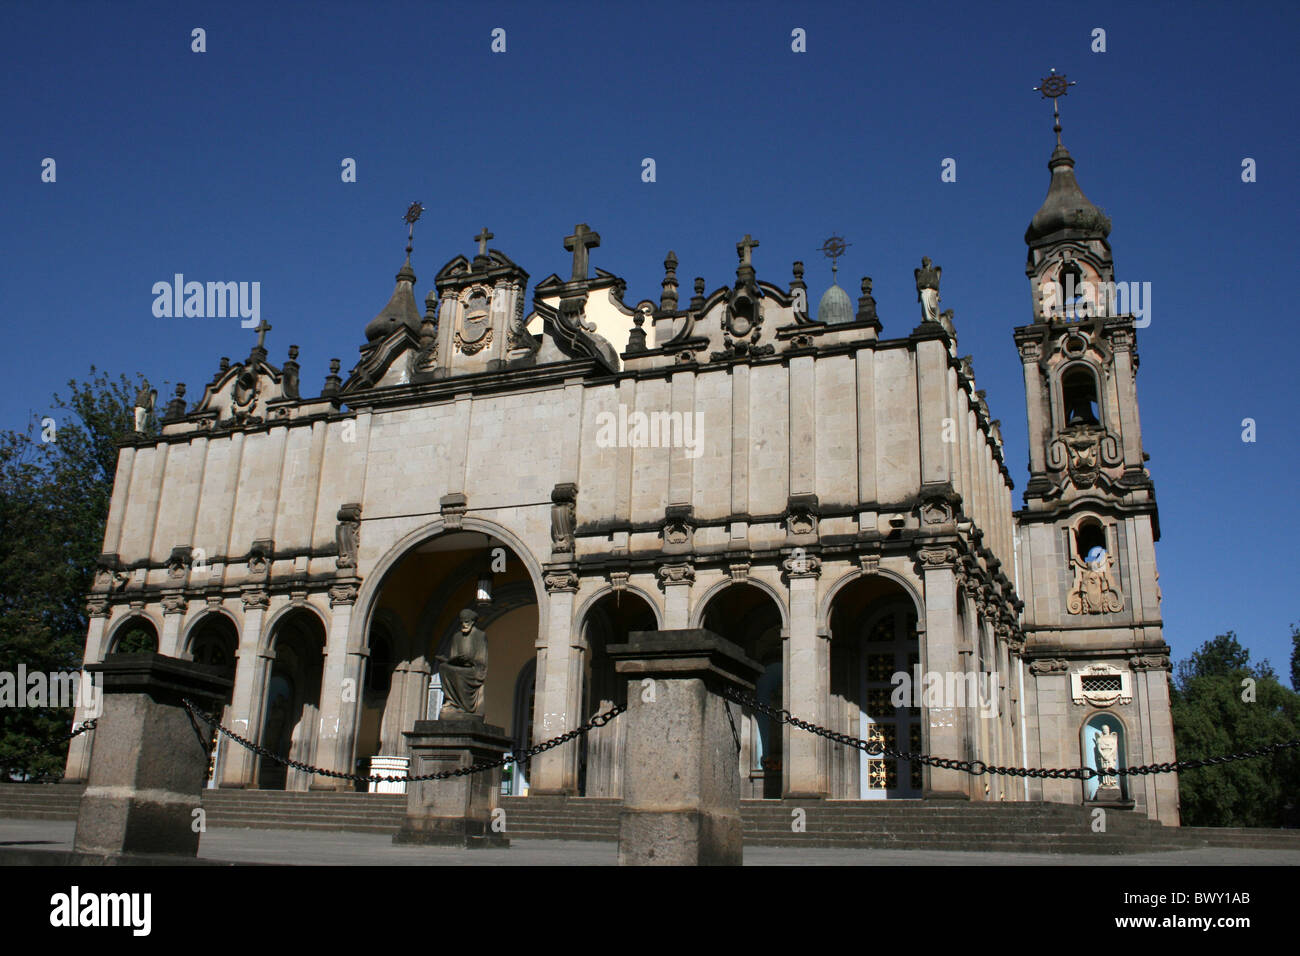 Holy Trinity Cathedral, Addis Ababa, Ethiopia - Stock Image